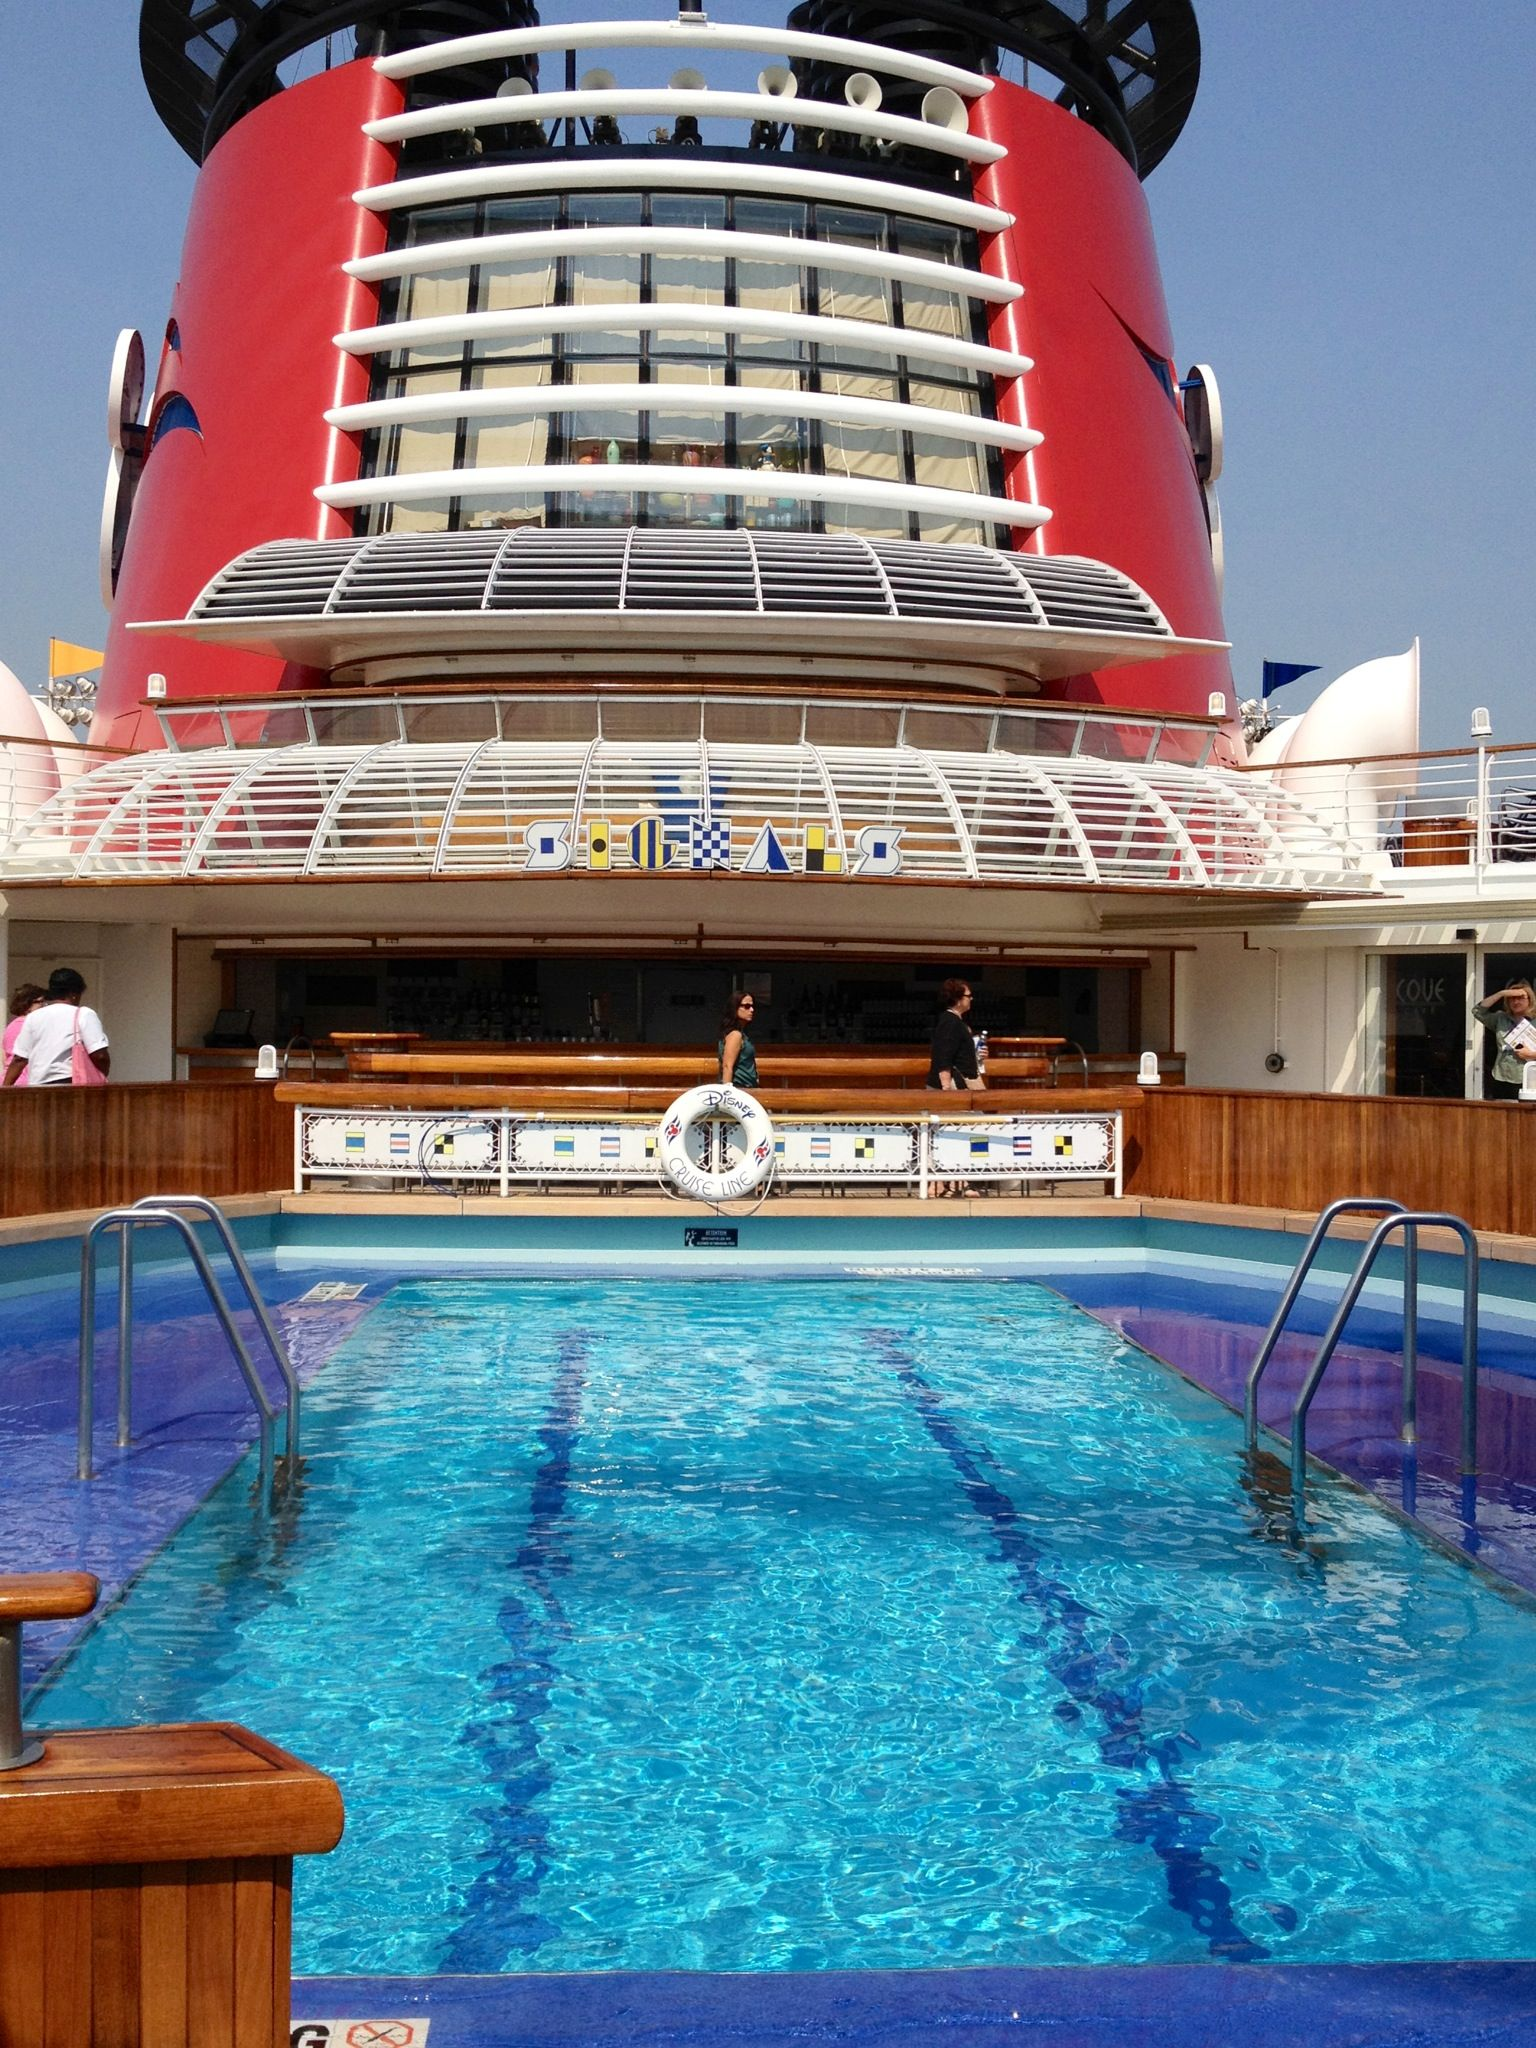 Pool Areas Aboard The Disney Magic Cruise Ship